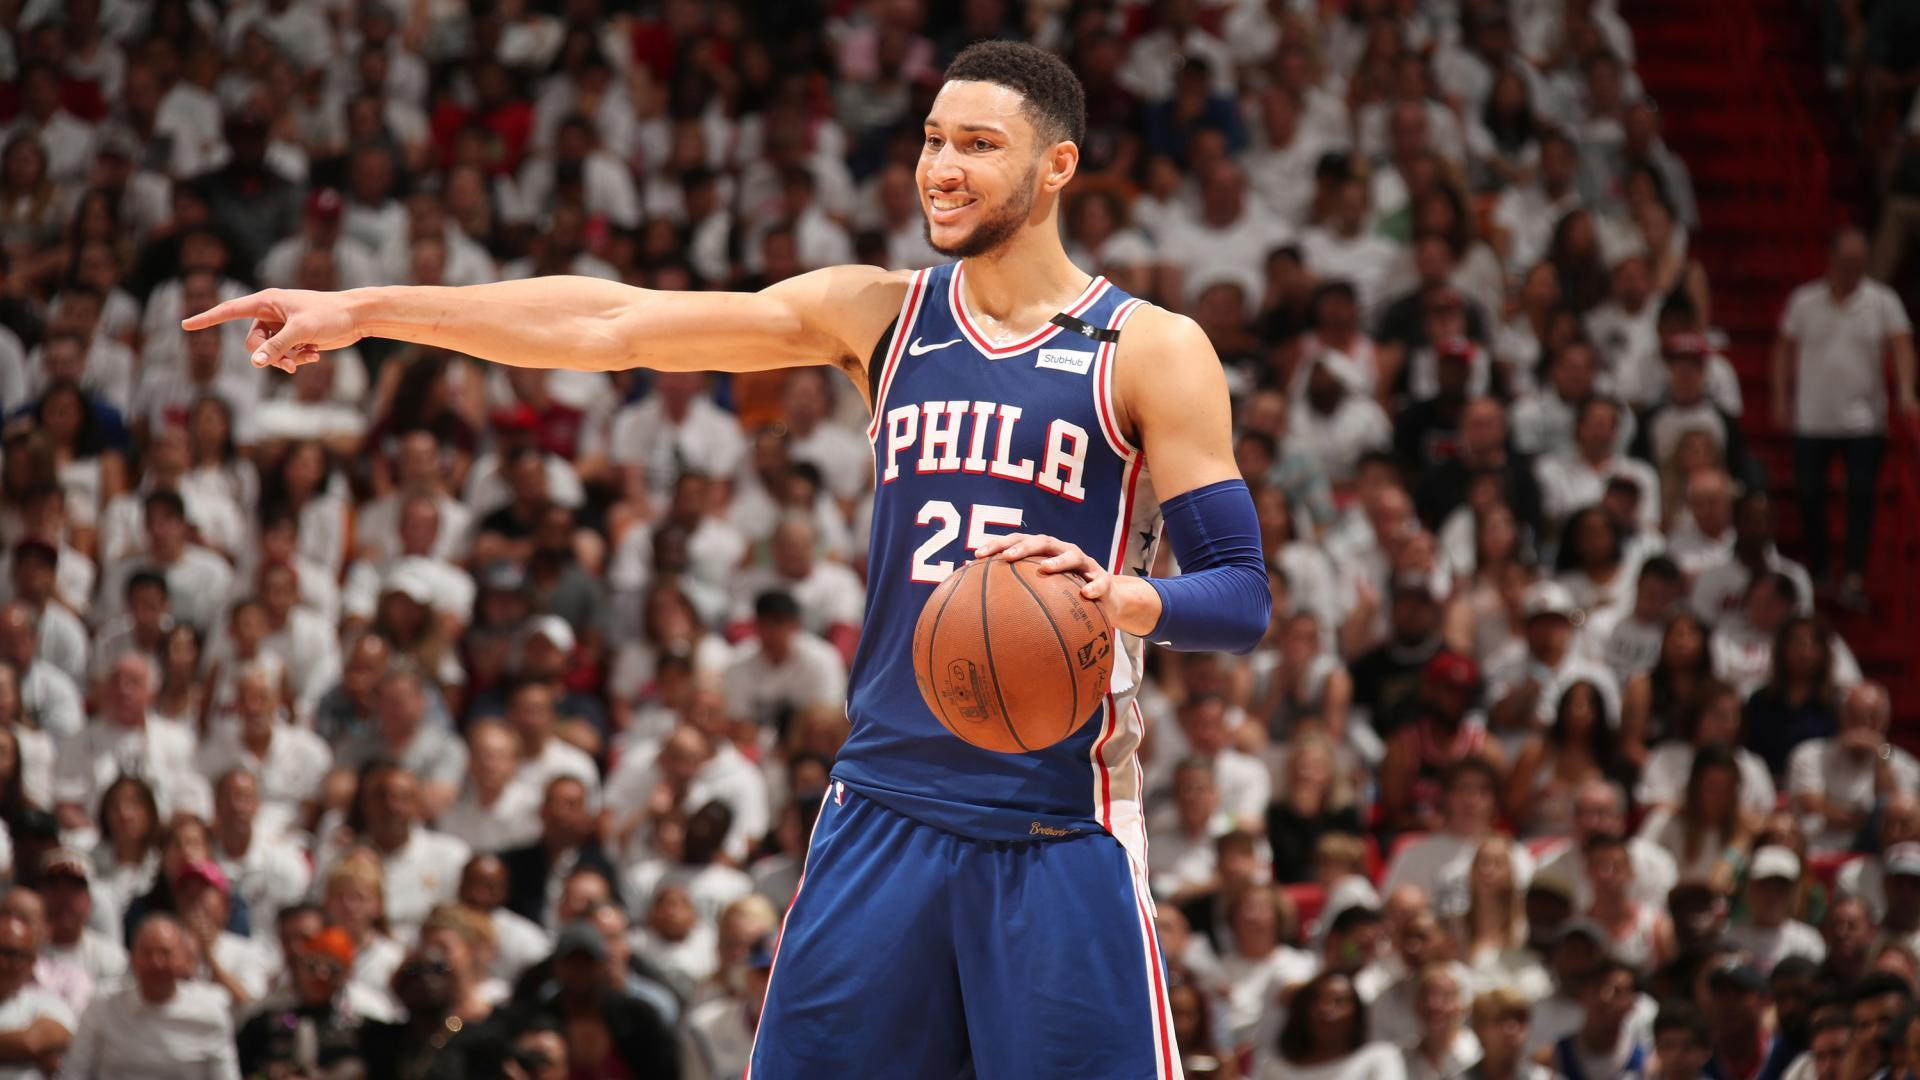 22.04.18 Move Of The Night: Ben Simmons